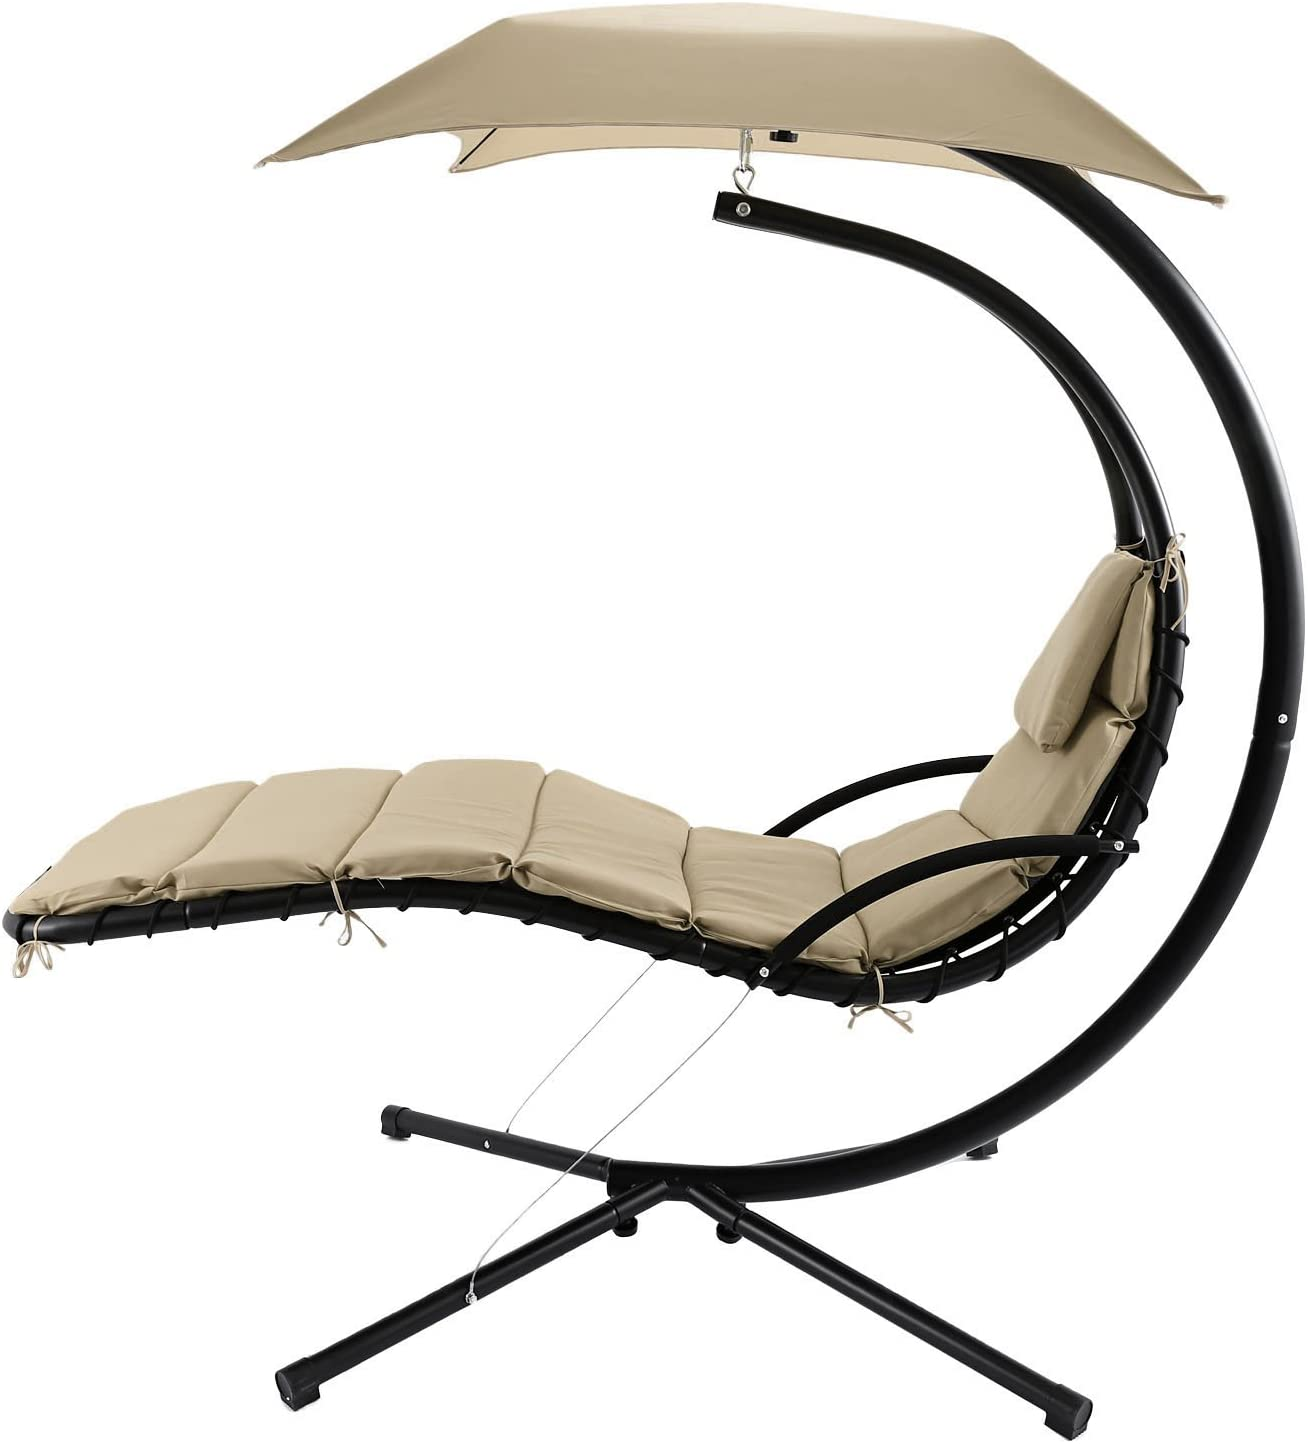 Ancheer hanging chaise lounger